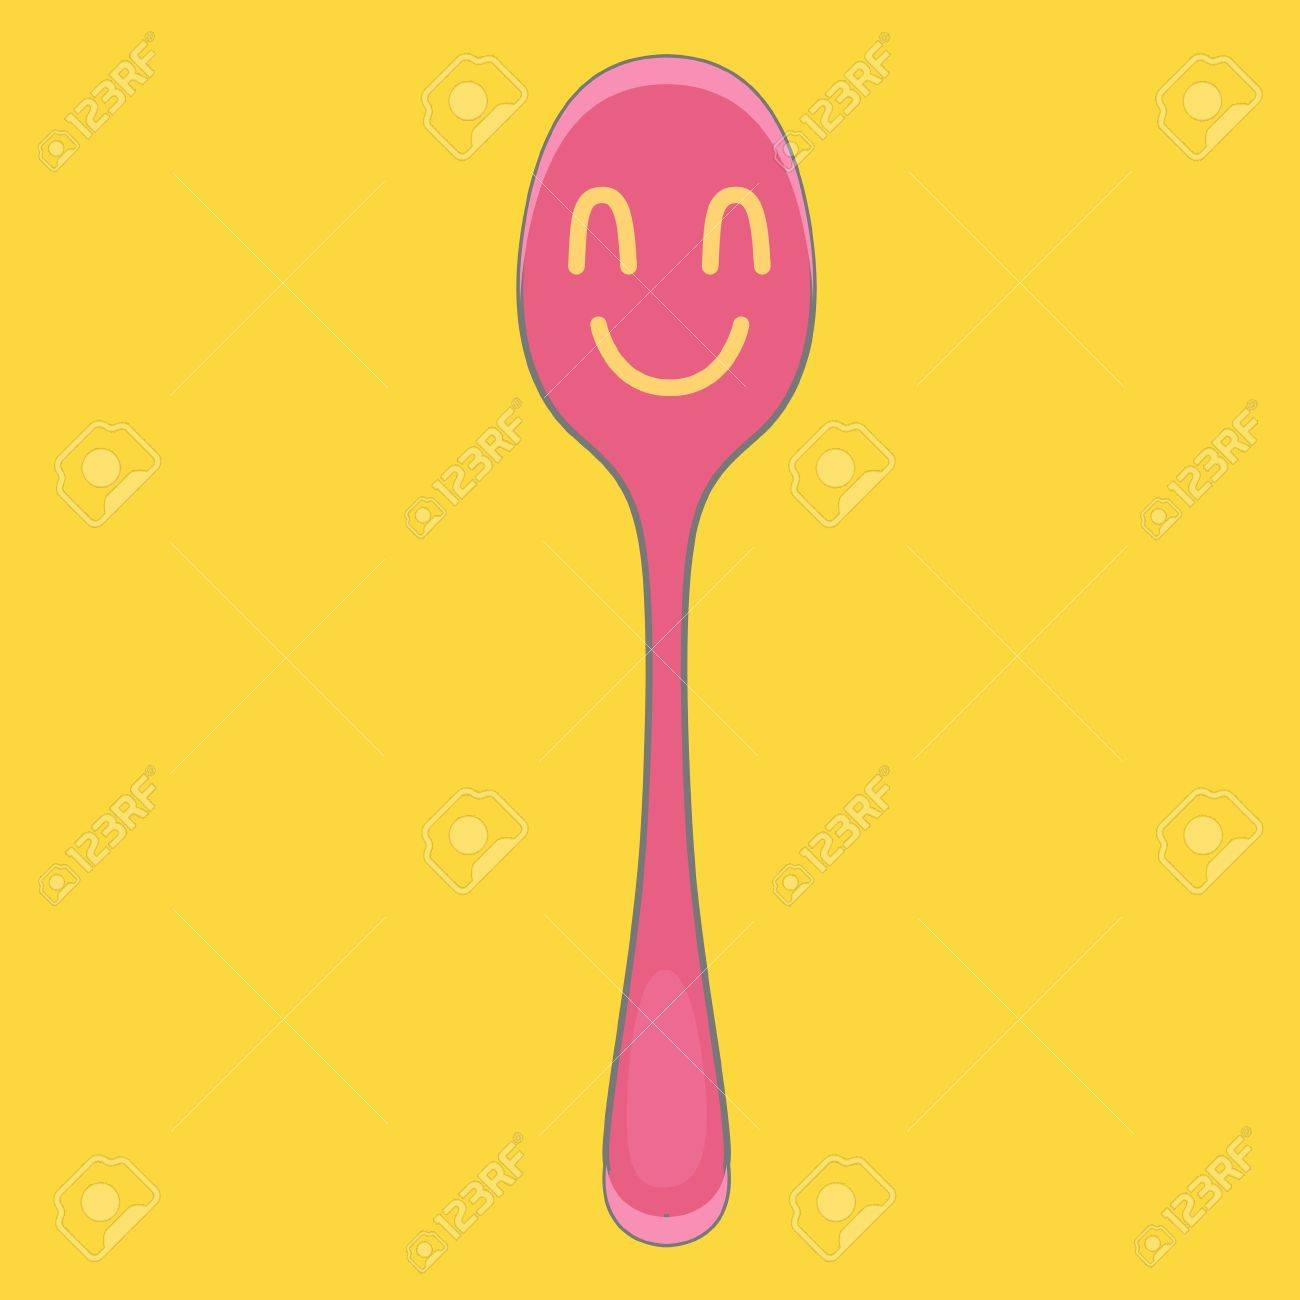 Cute spoon on yellow isolated background. Stock Vector - 18496701